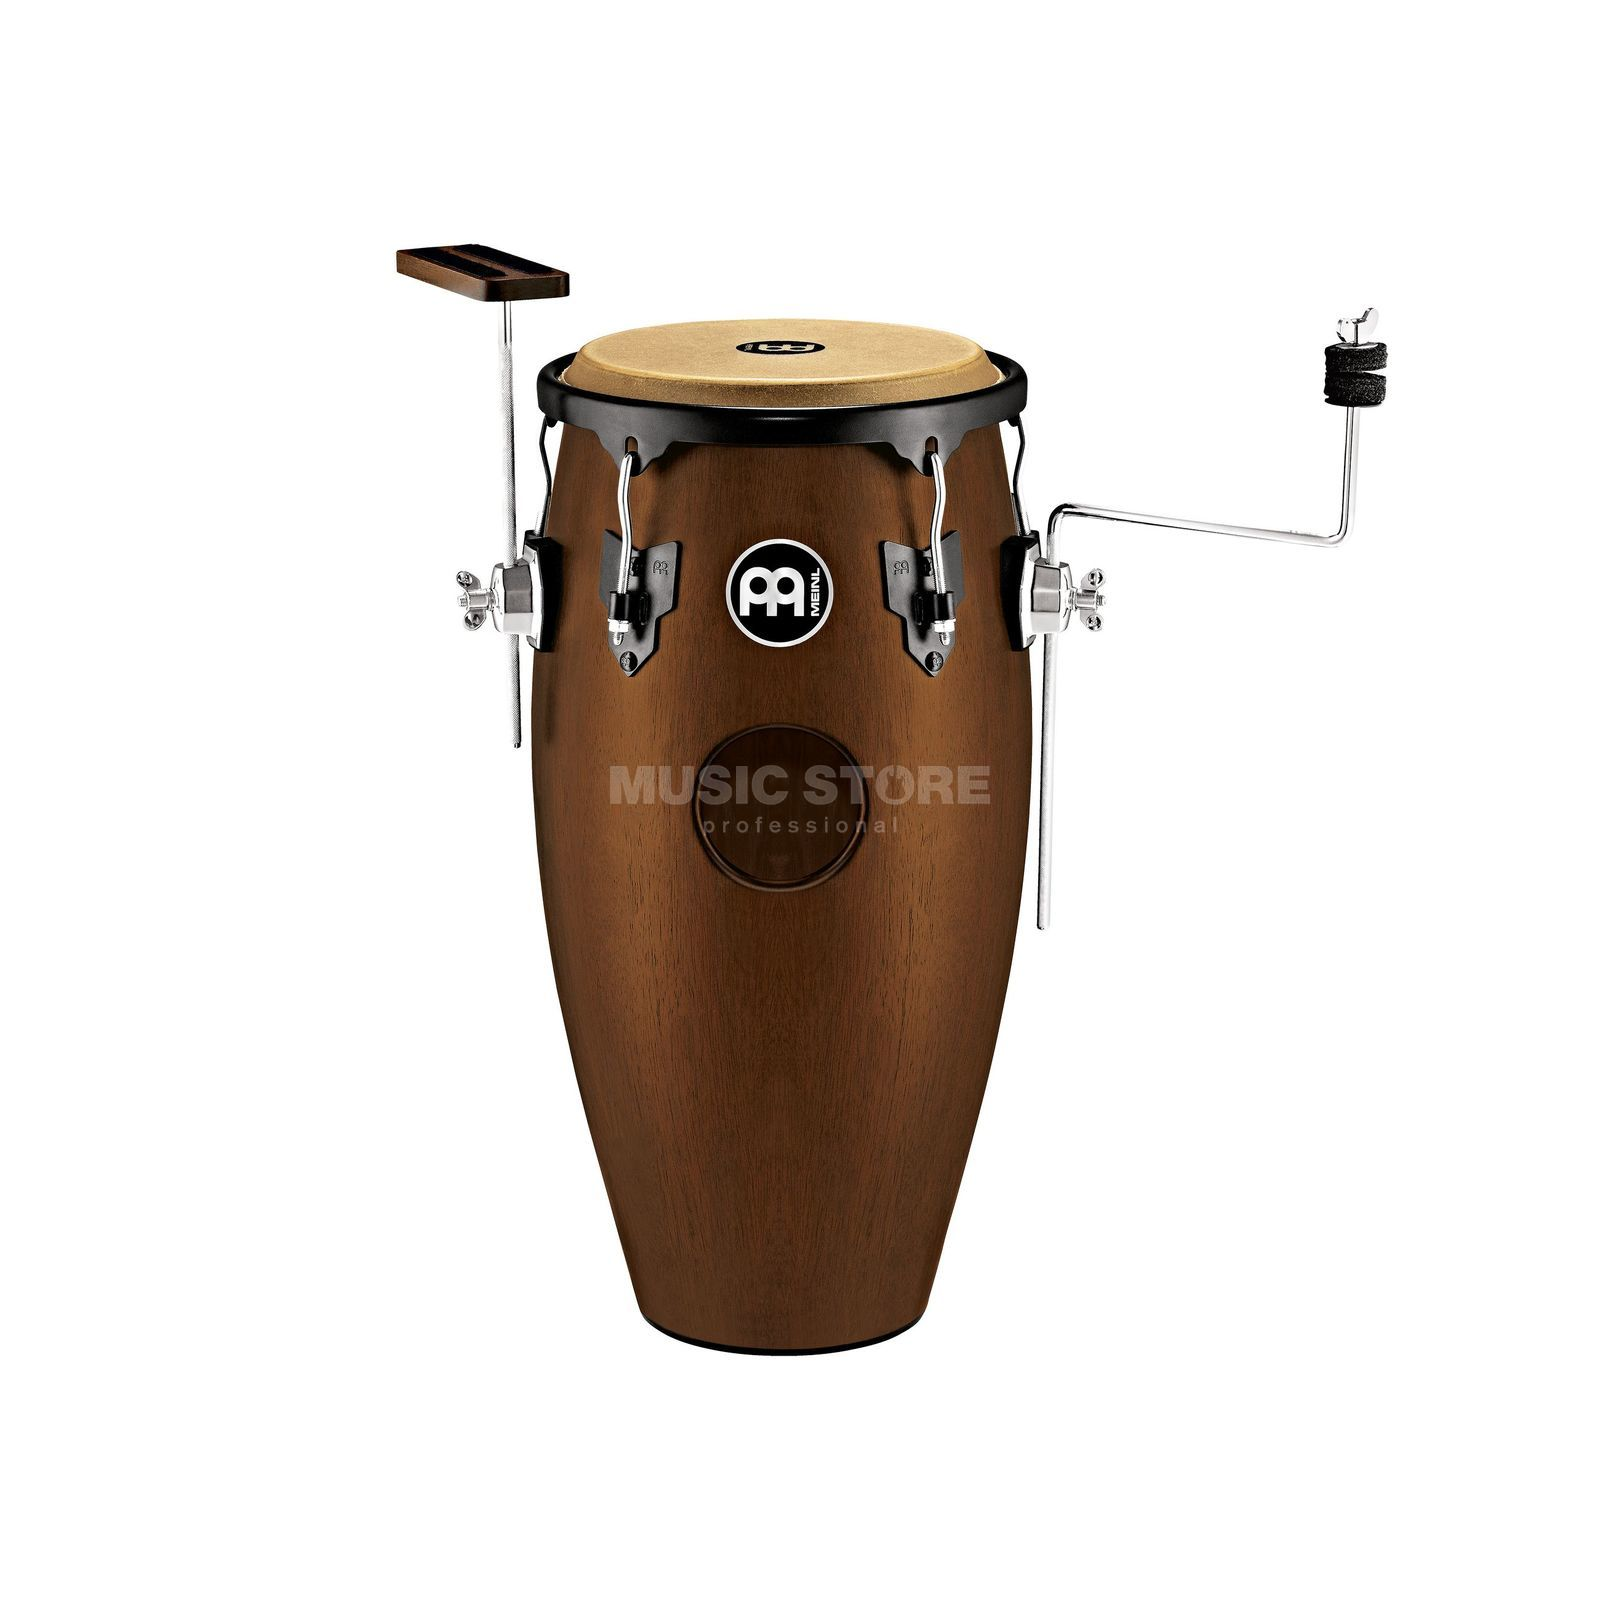 Meinl DSC11VWB-M Add-On Conga Vintage Wine Barrel Image du produit